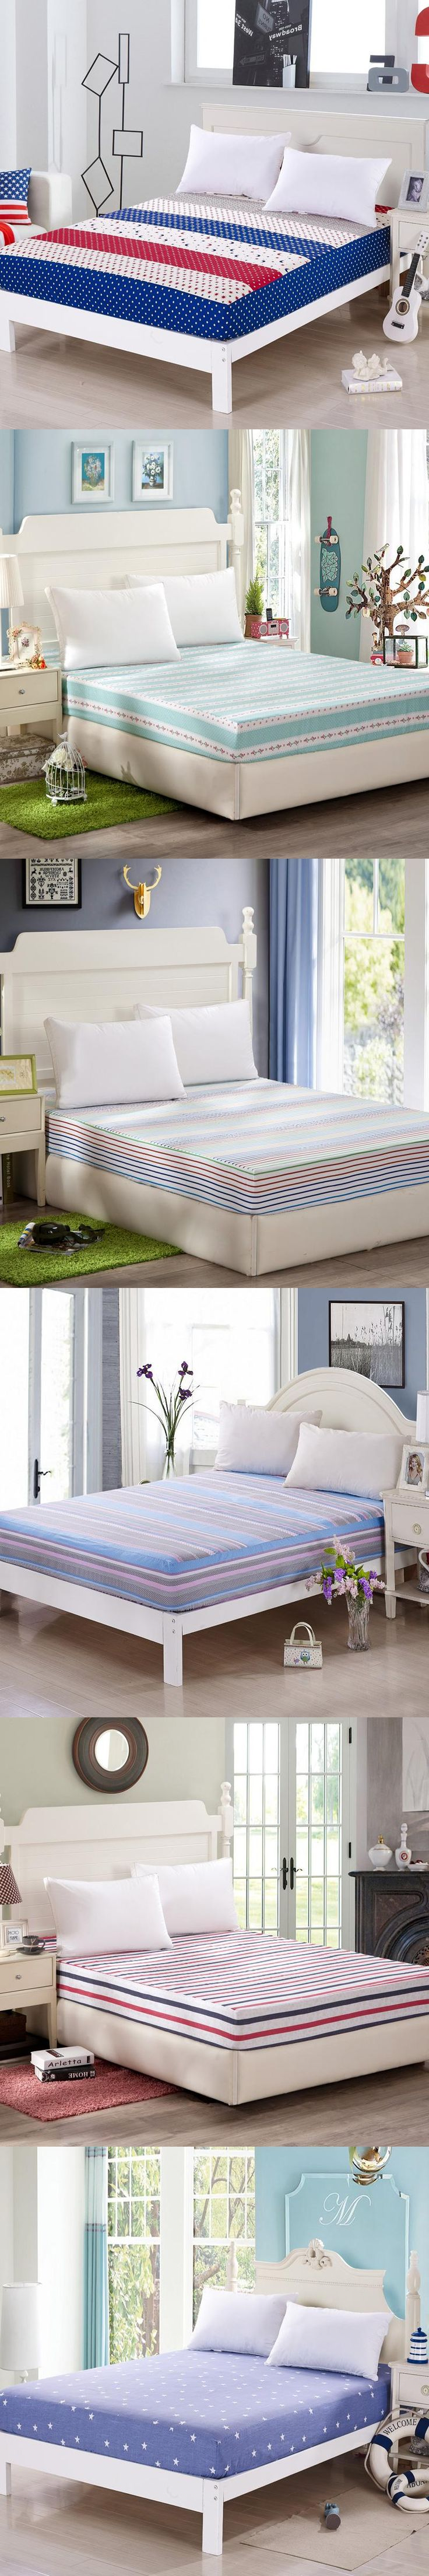 Moon Star Stripes Fitted Sheet High Quality 100%Cotton Bed Sheet Elastic Mattress Cover 120x200cm/150x200cm/180x200cm Multi-size